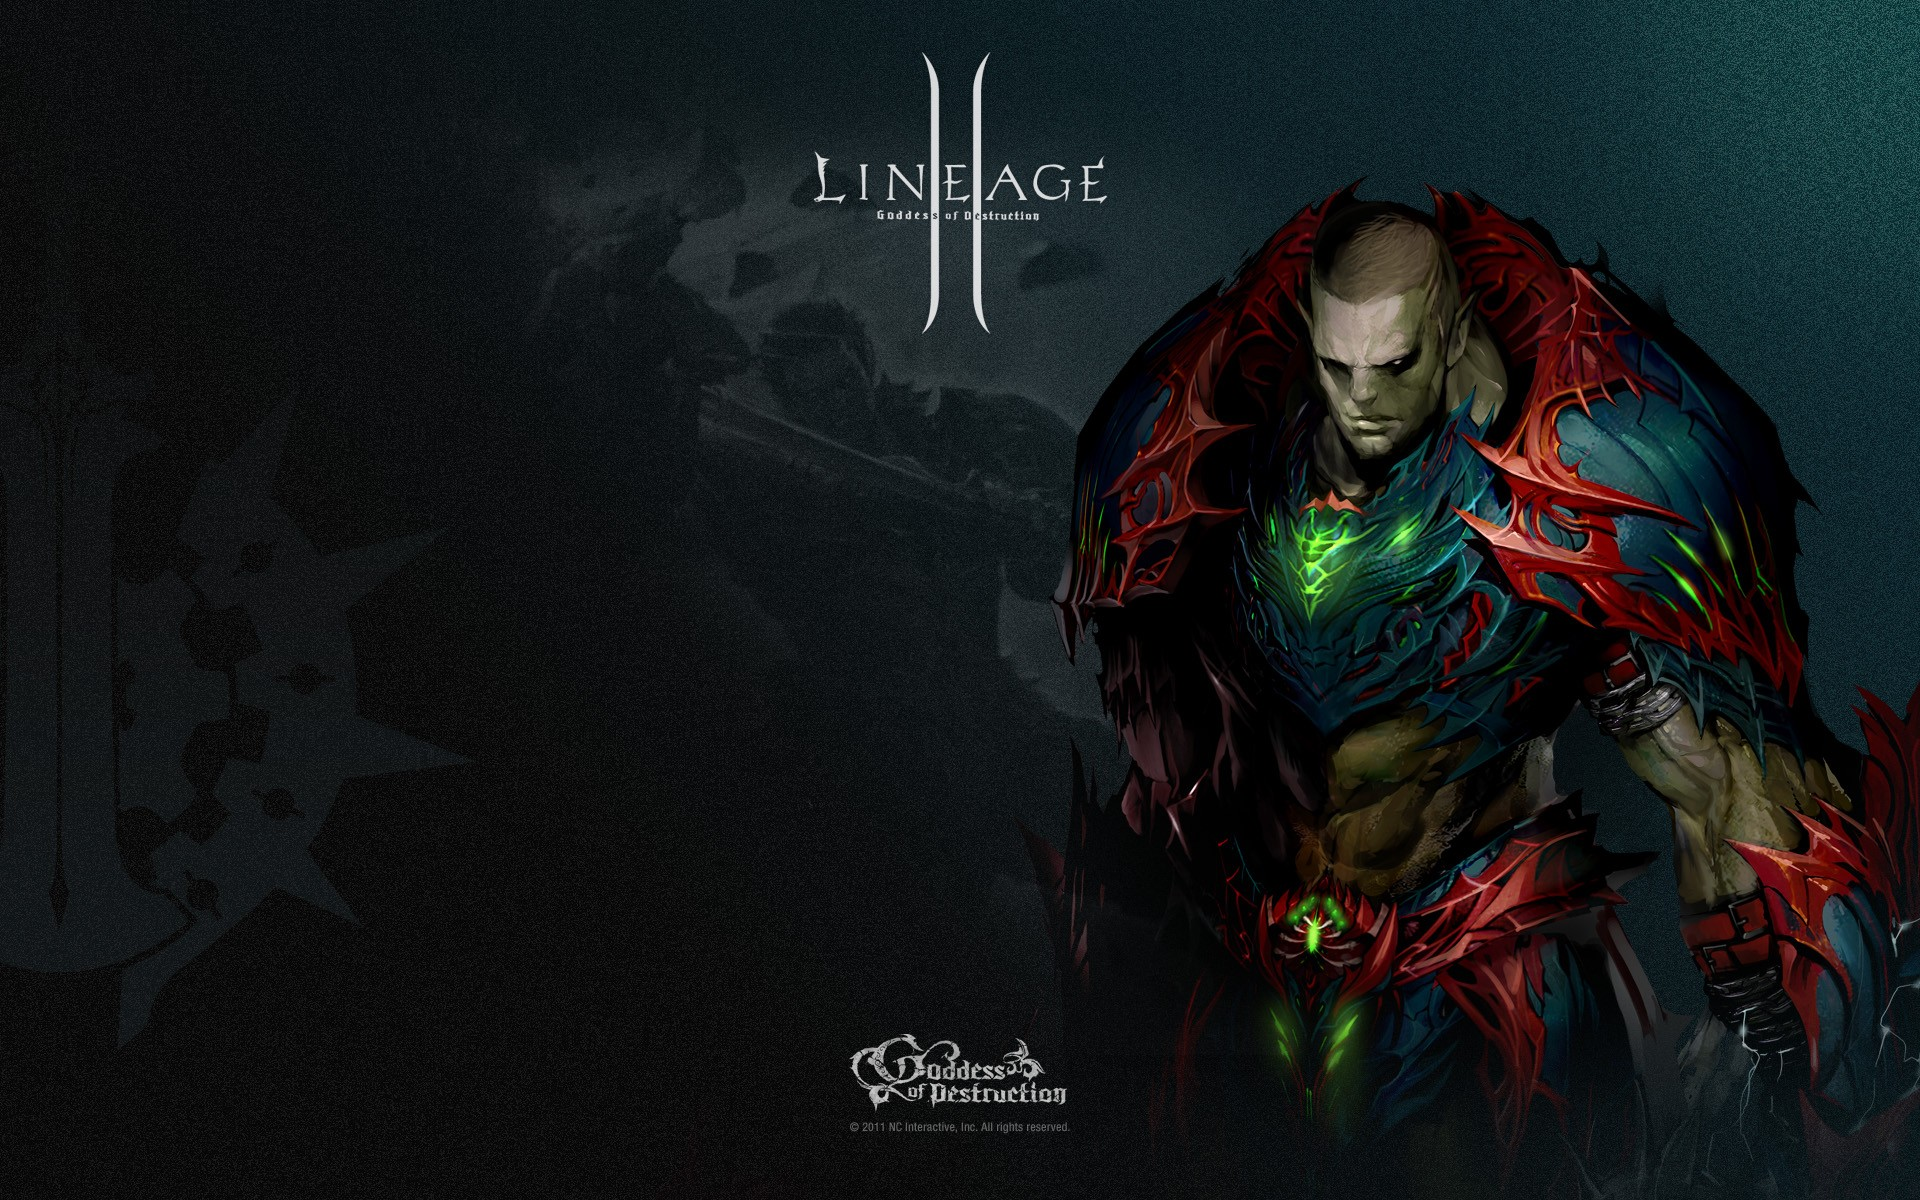 Destroyer Orc of Lineage 2, Goddess of Destruction